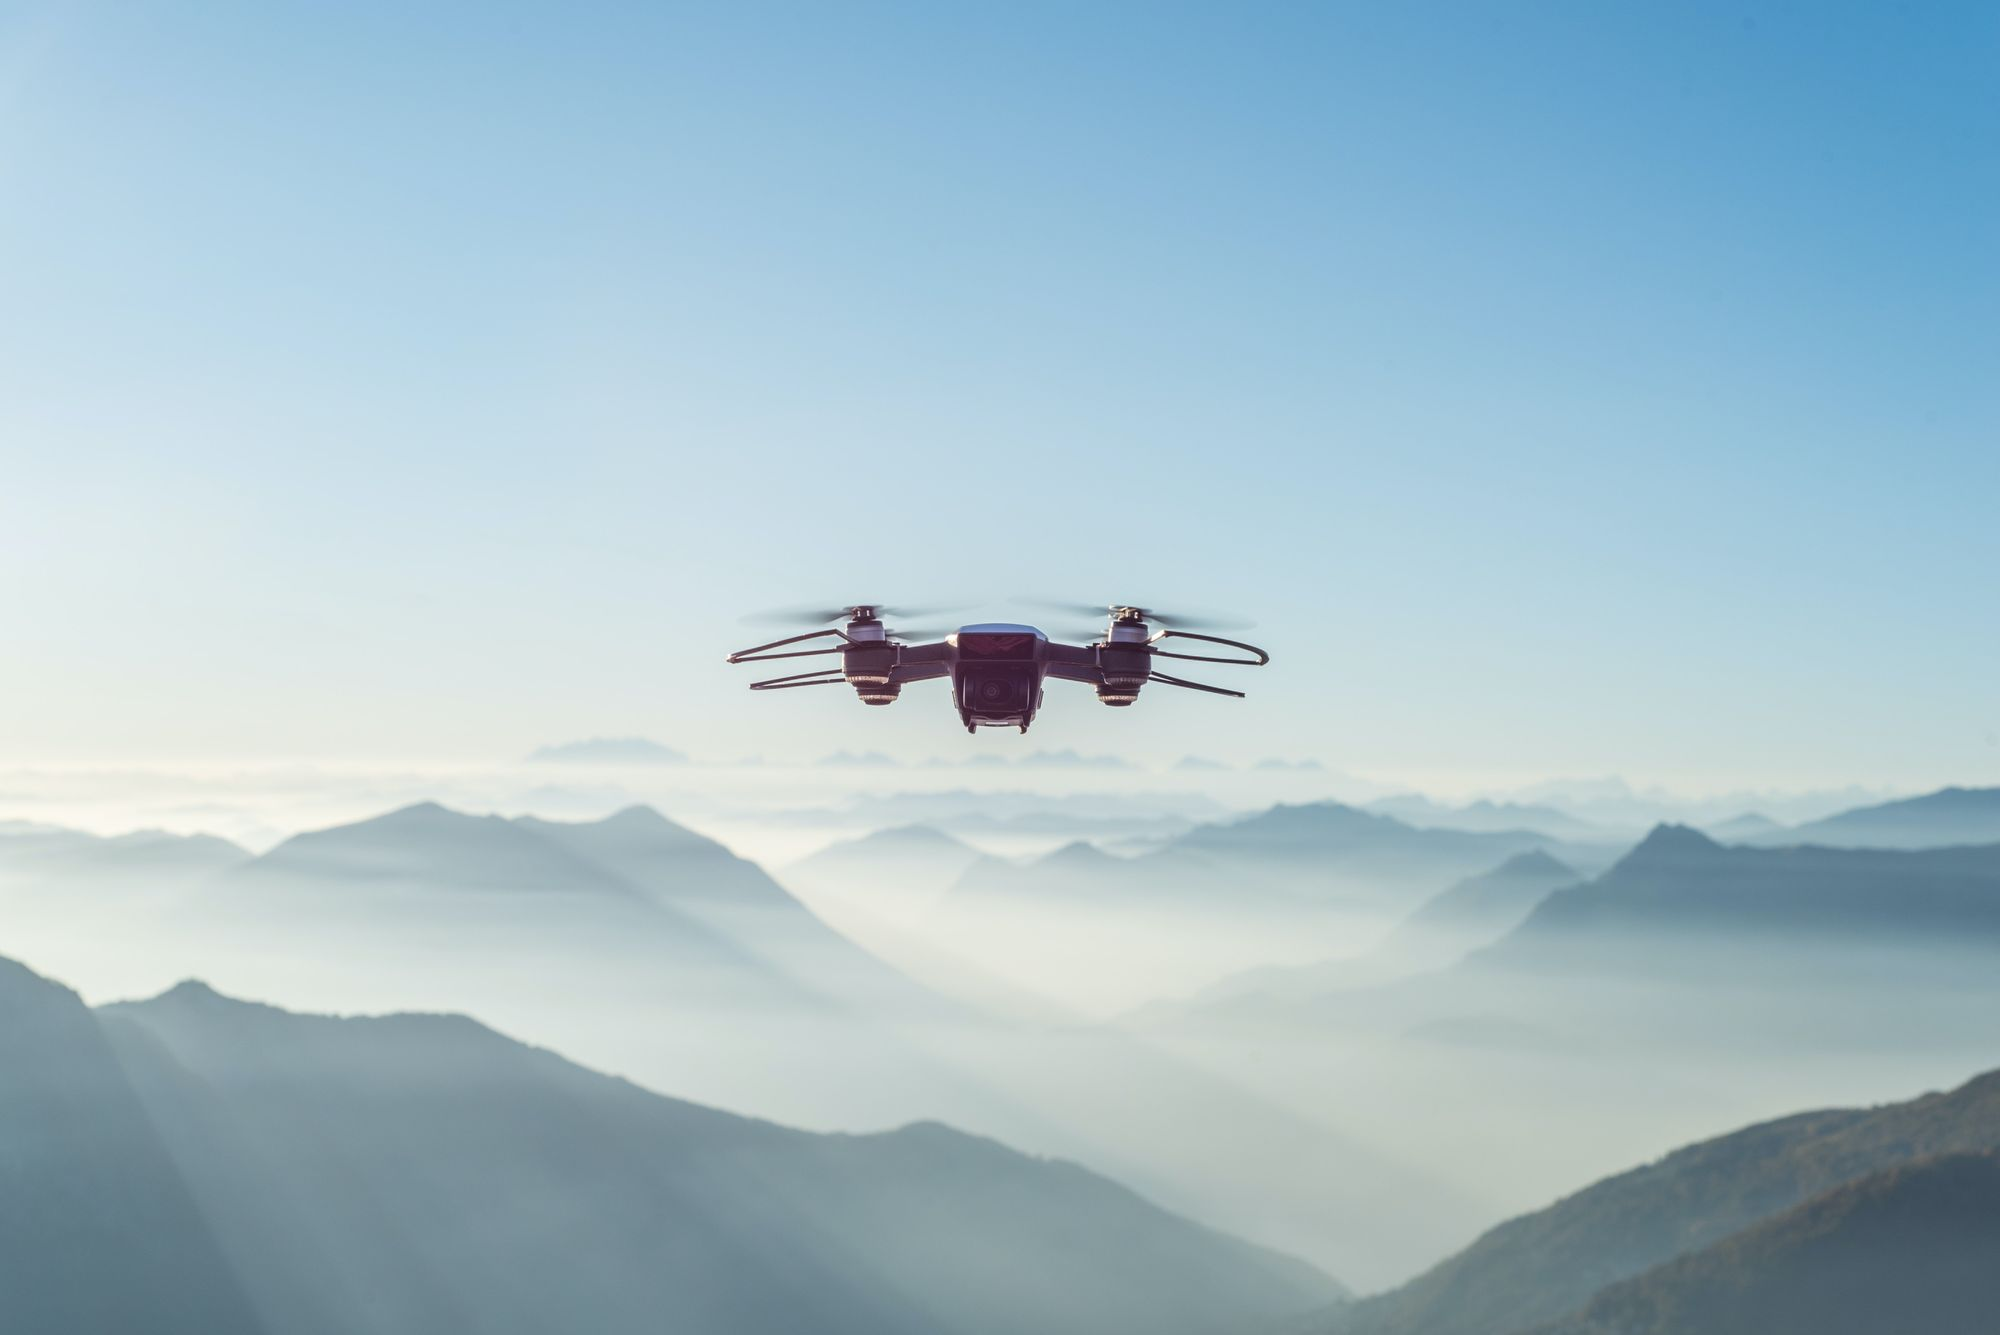 A quick rundown of all the various drone uses